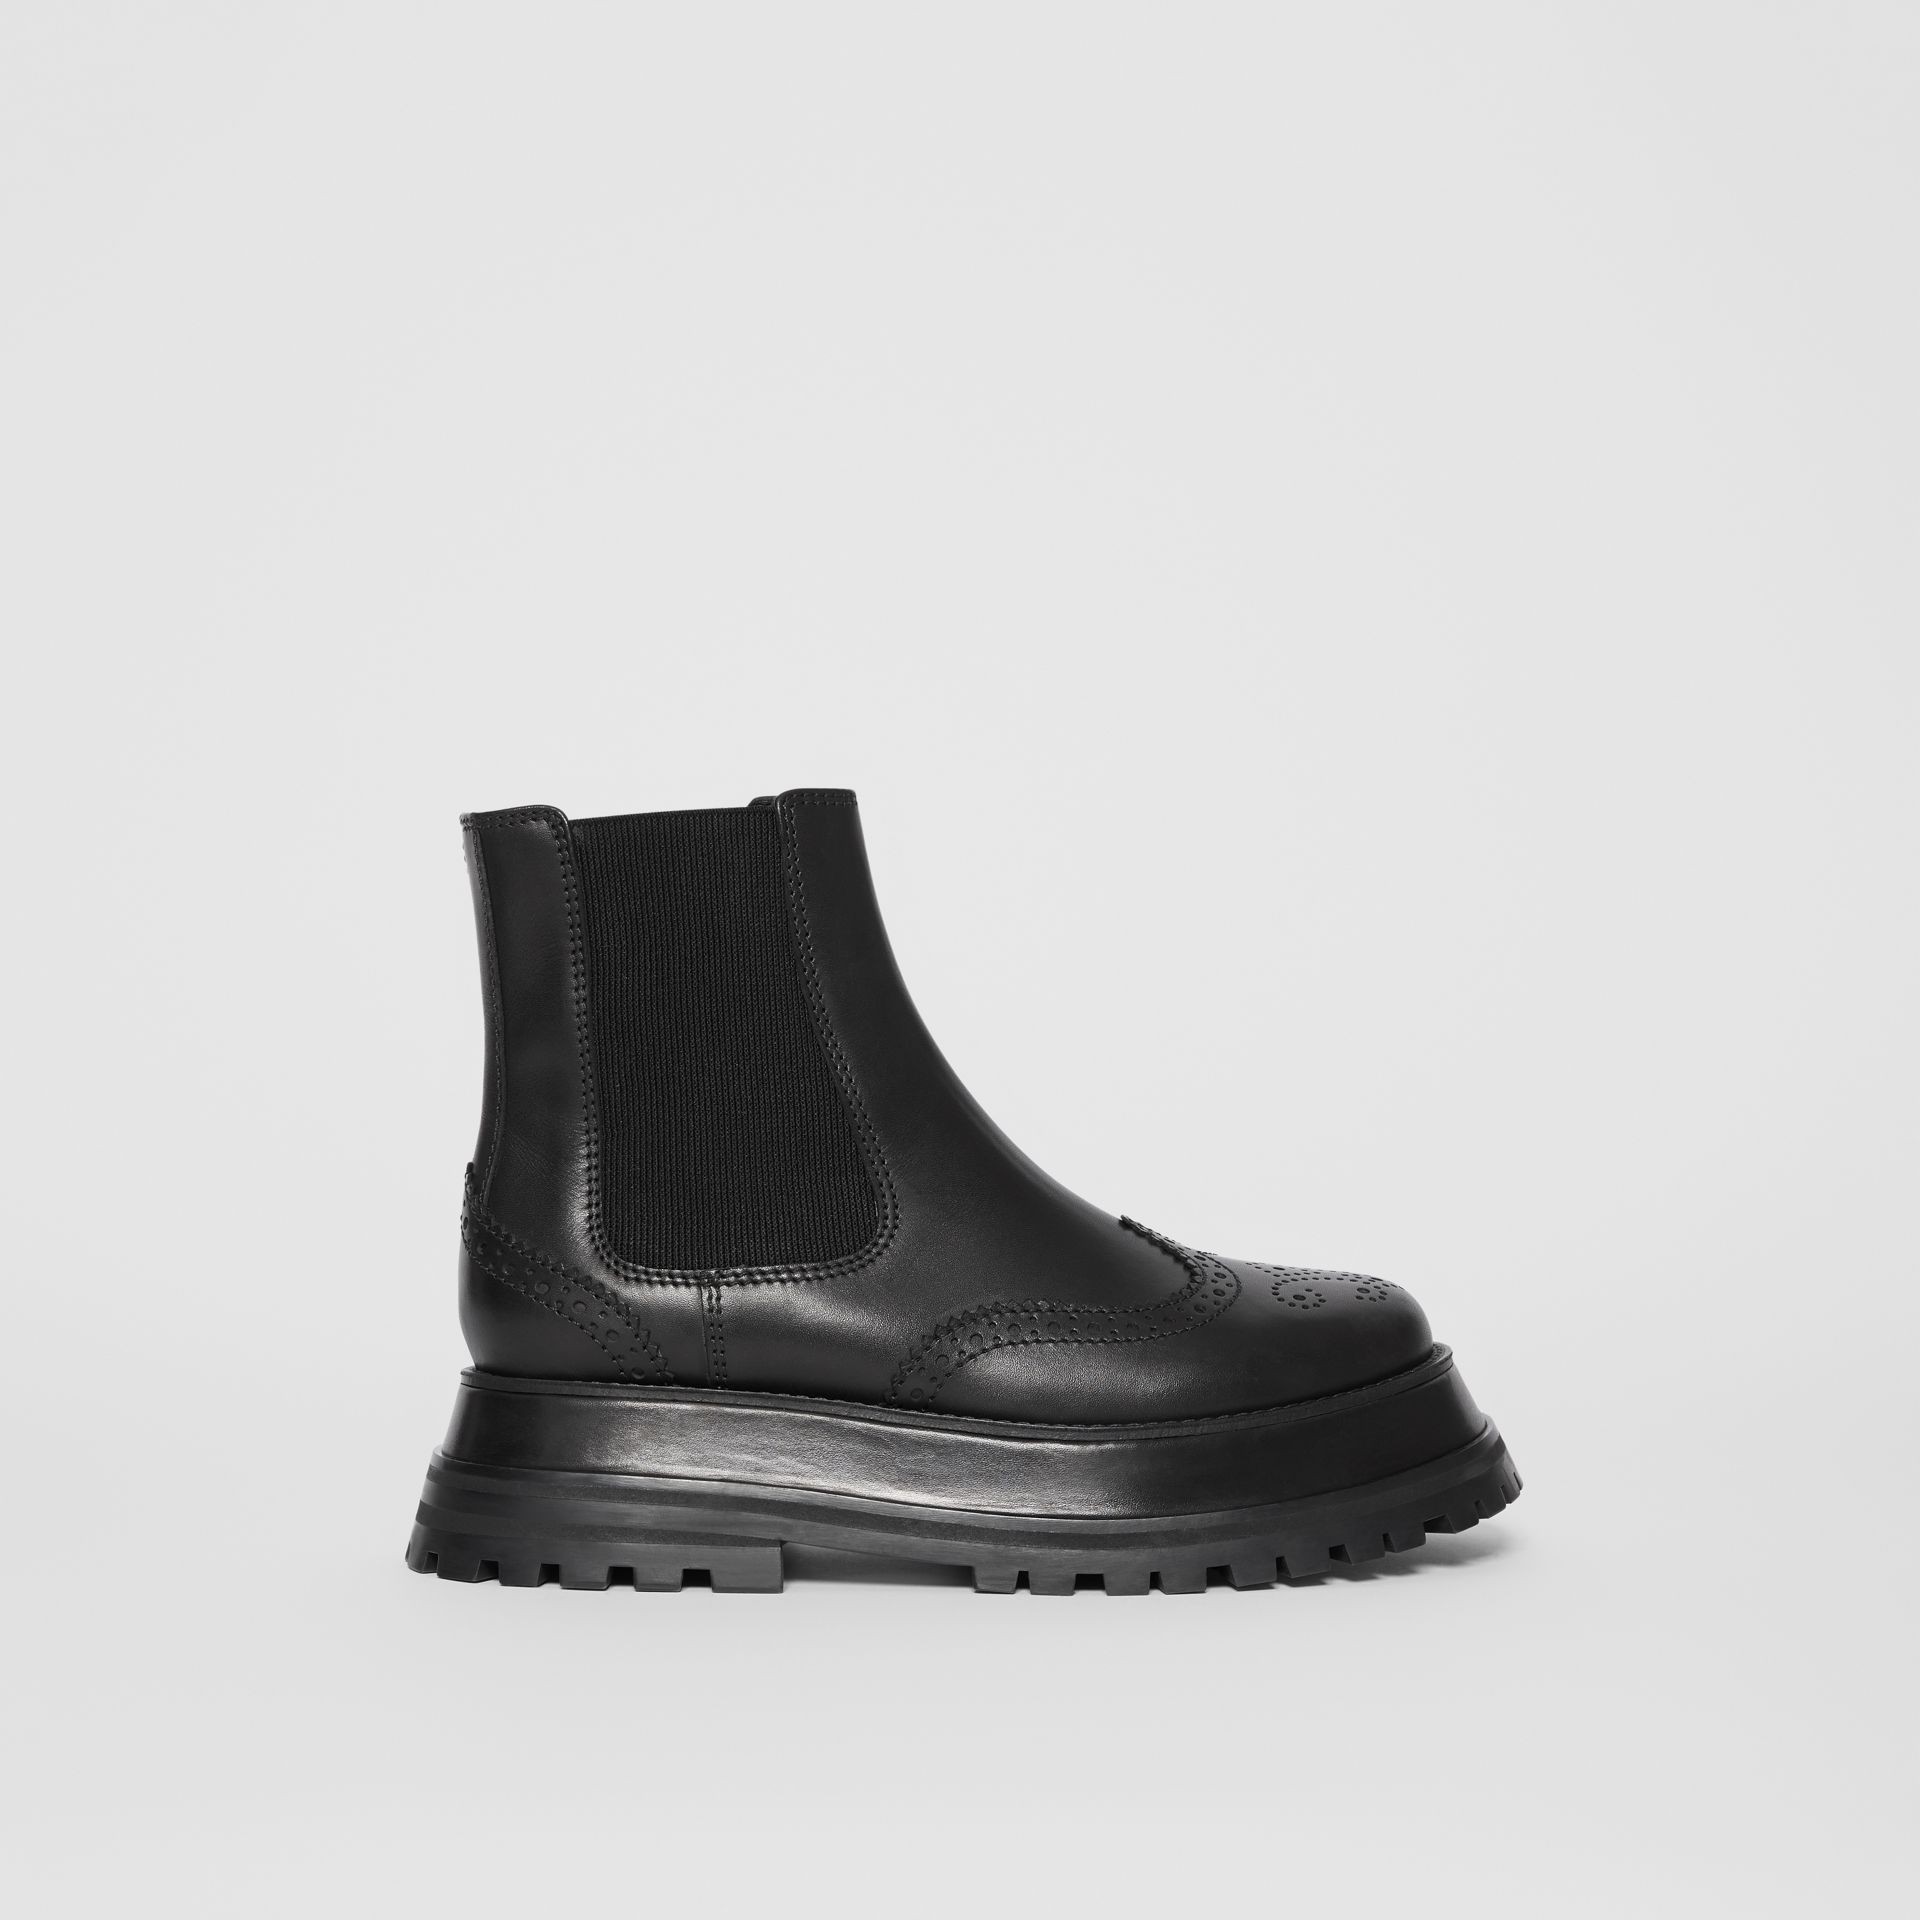 Brogue Detail Leather Chelsea Boots in Black - Women | Burberry Singapore - gallery image 5